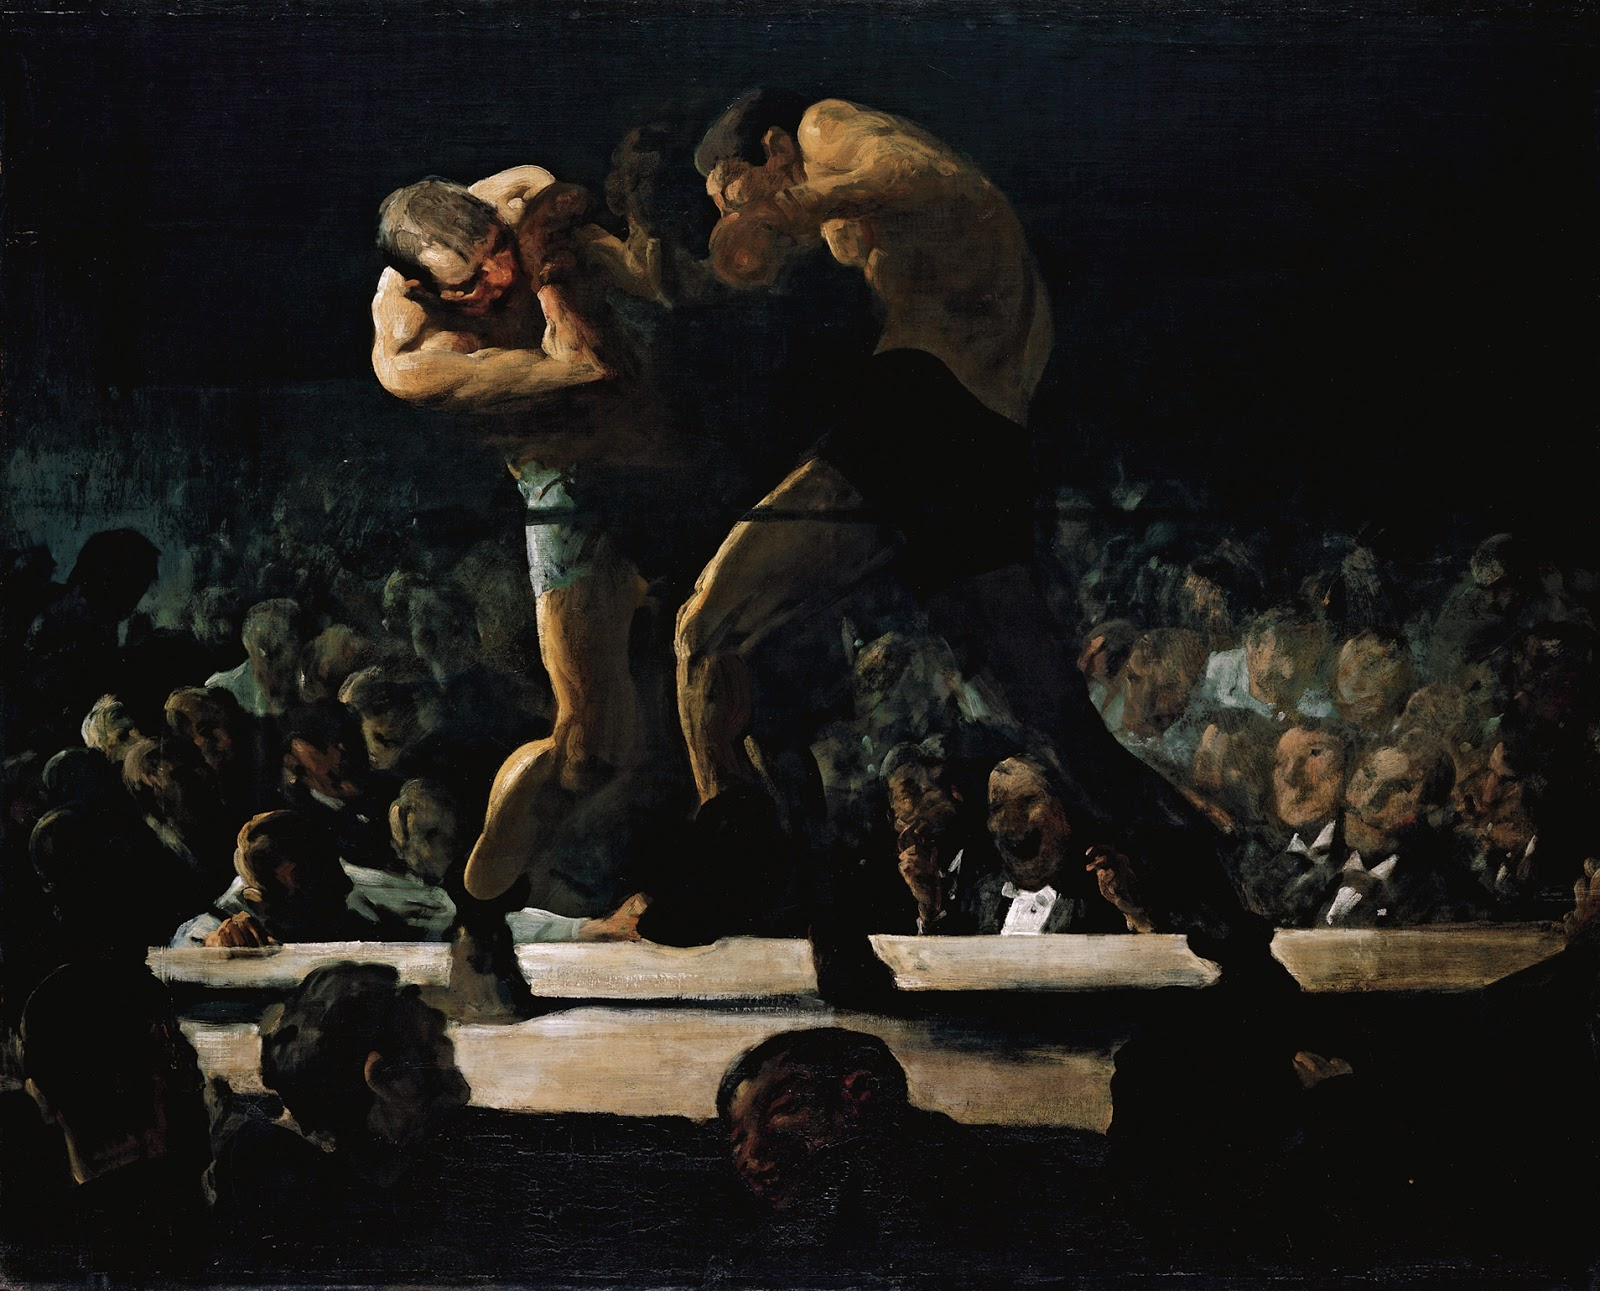 George Bellows: Modern American Life, Royal Academy   The